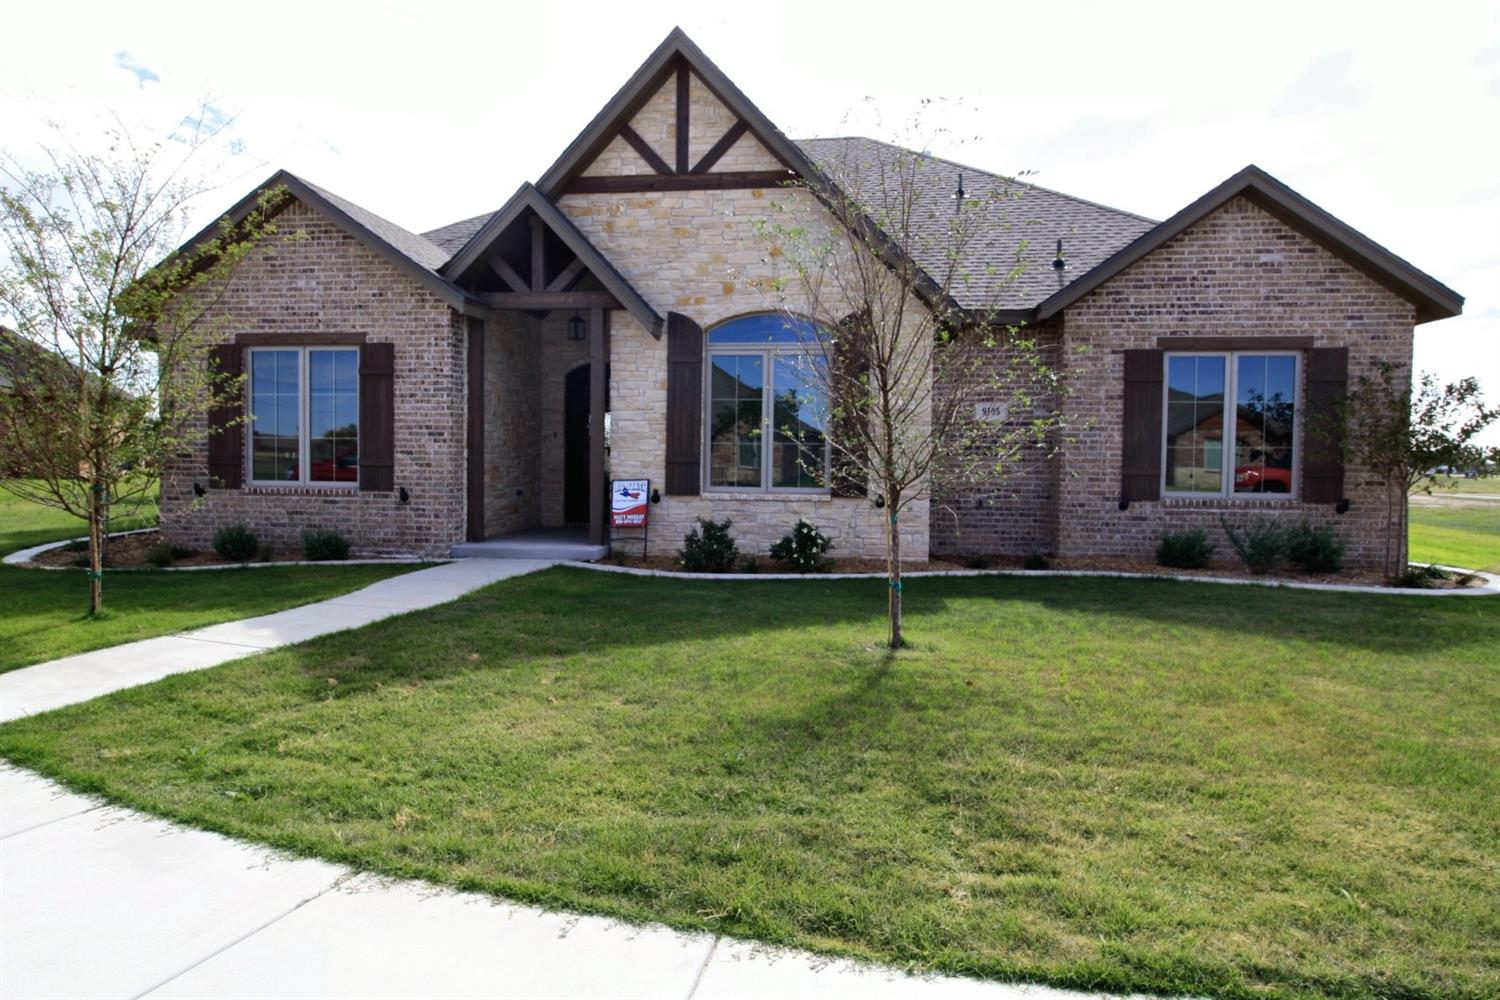 New Construction Built by Big State Custom Homes. 4/3/3 located in a gated golf-course community! This plan features a large open concept living, dining & kitchen area overlooking a covered patio. Gourmet kitchen with stainless steel appliances, double freezer/fridge, granite island, gas range, decorative vent hood & large walk-in pantry w/ coffee bar or mini fridge.  Secluded master suite, double granite vanities, walk-in tile shower, soaking tub, walk around closet w/ vanity and tons of storage. 3 spacious guest bedrooms, one of which is secluded w/ its own private bath! The 3 car rear entry garage leads into the mudroom & spacious utility room.